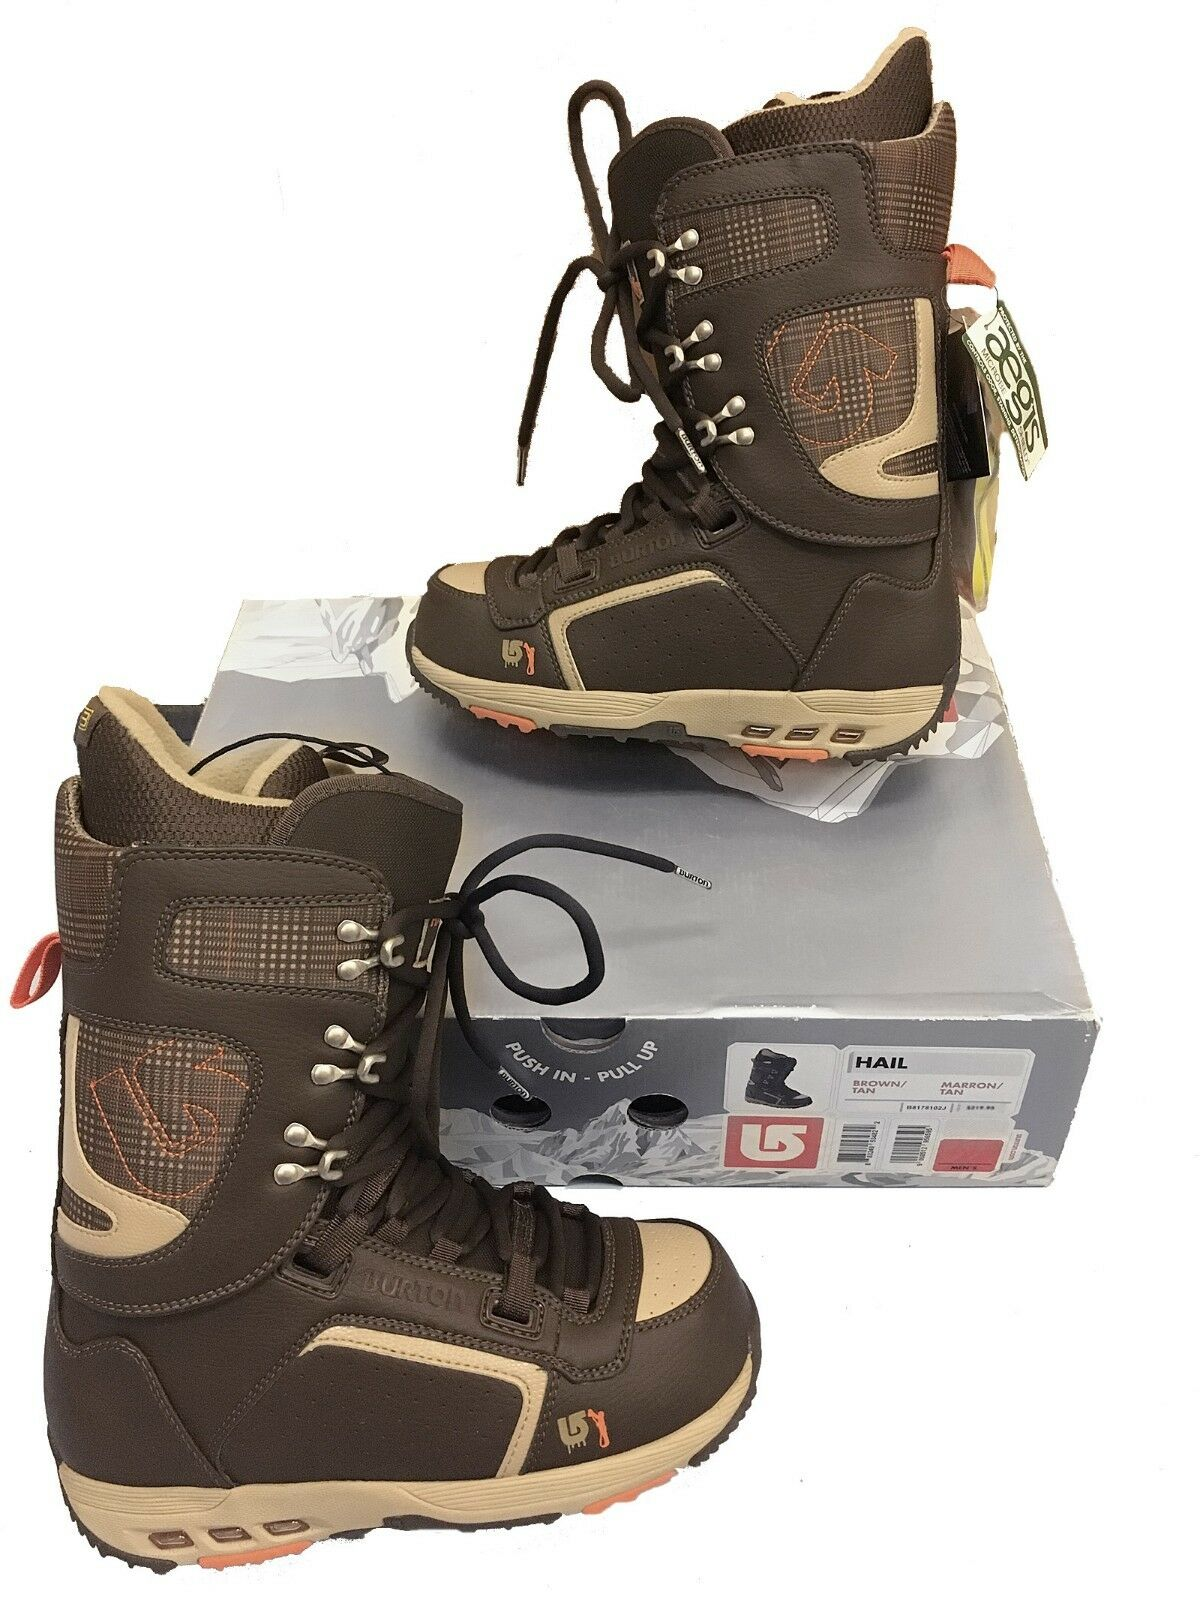 NEW Burton Hail Snowboard Boots   US 6, Mondo 24, Euro 38  BROWN